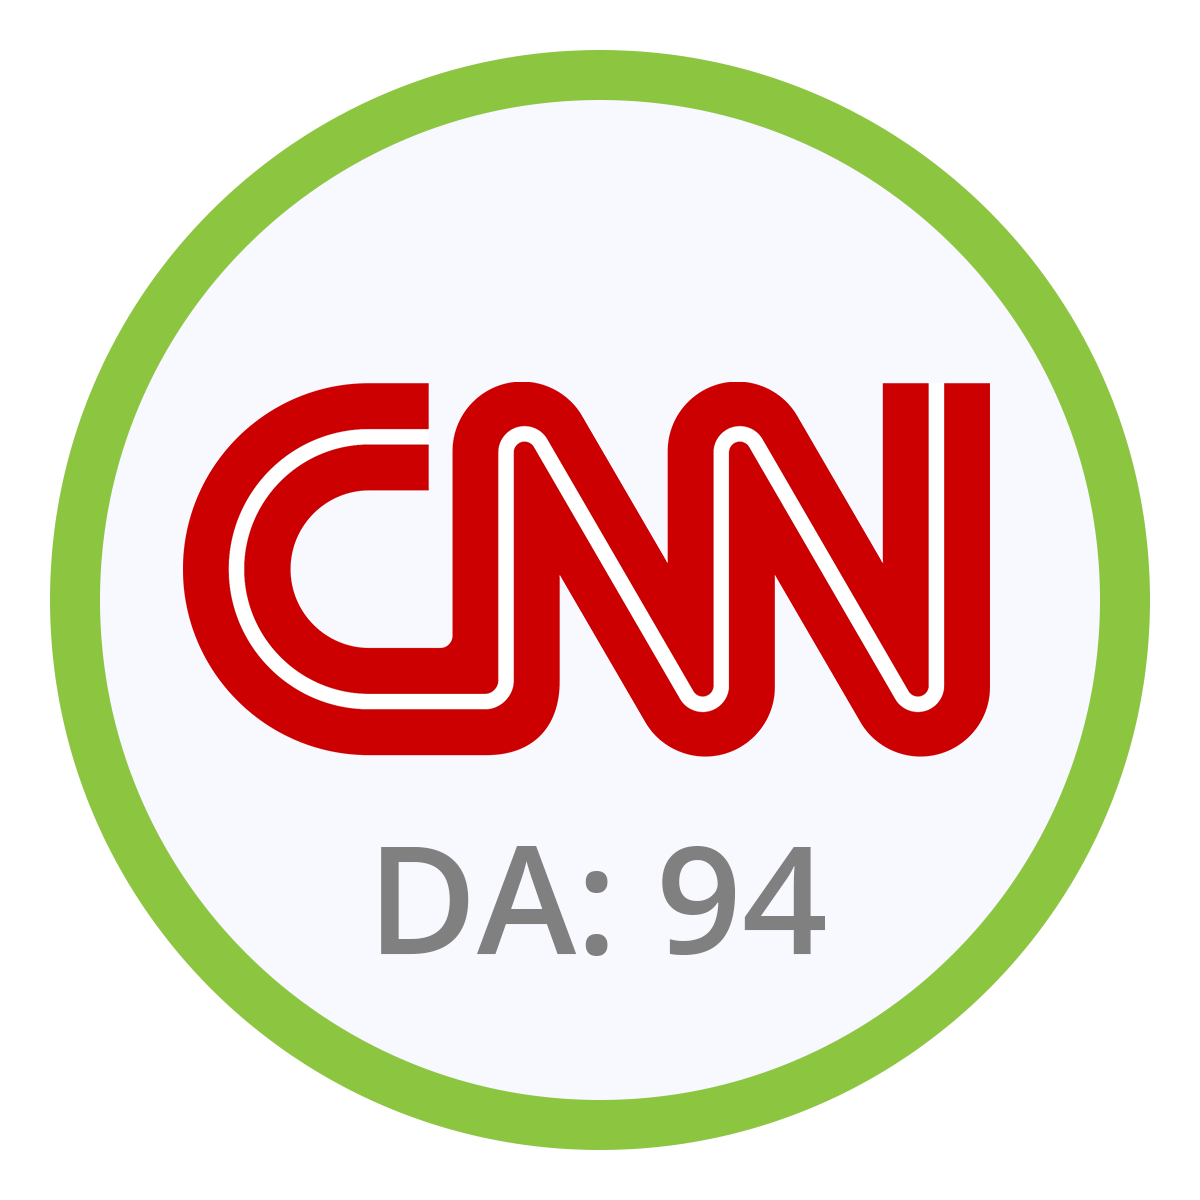 CNN Domain Authority